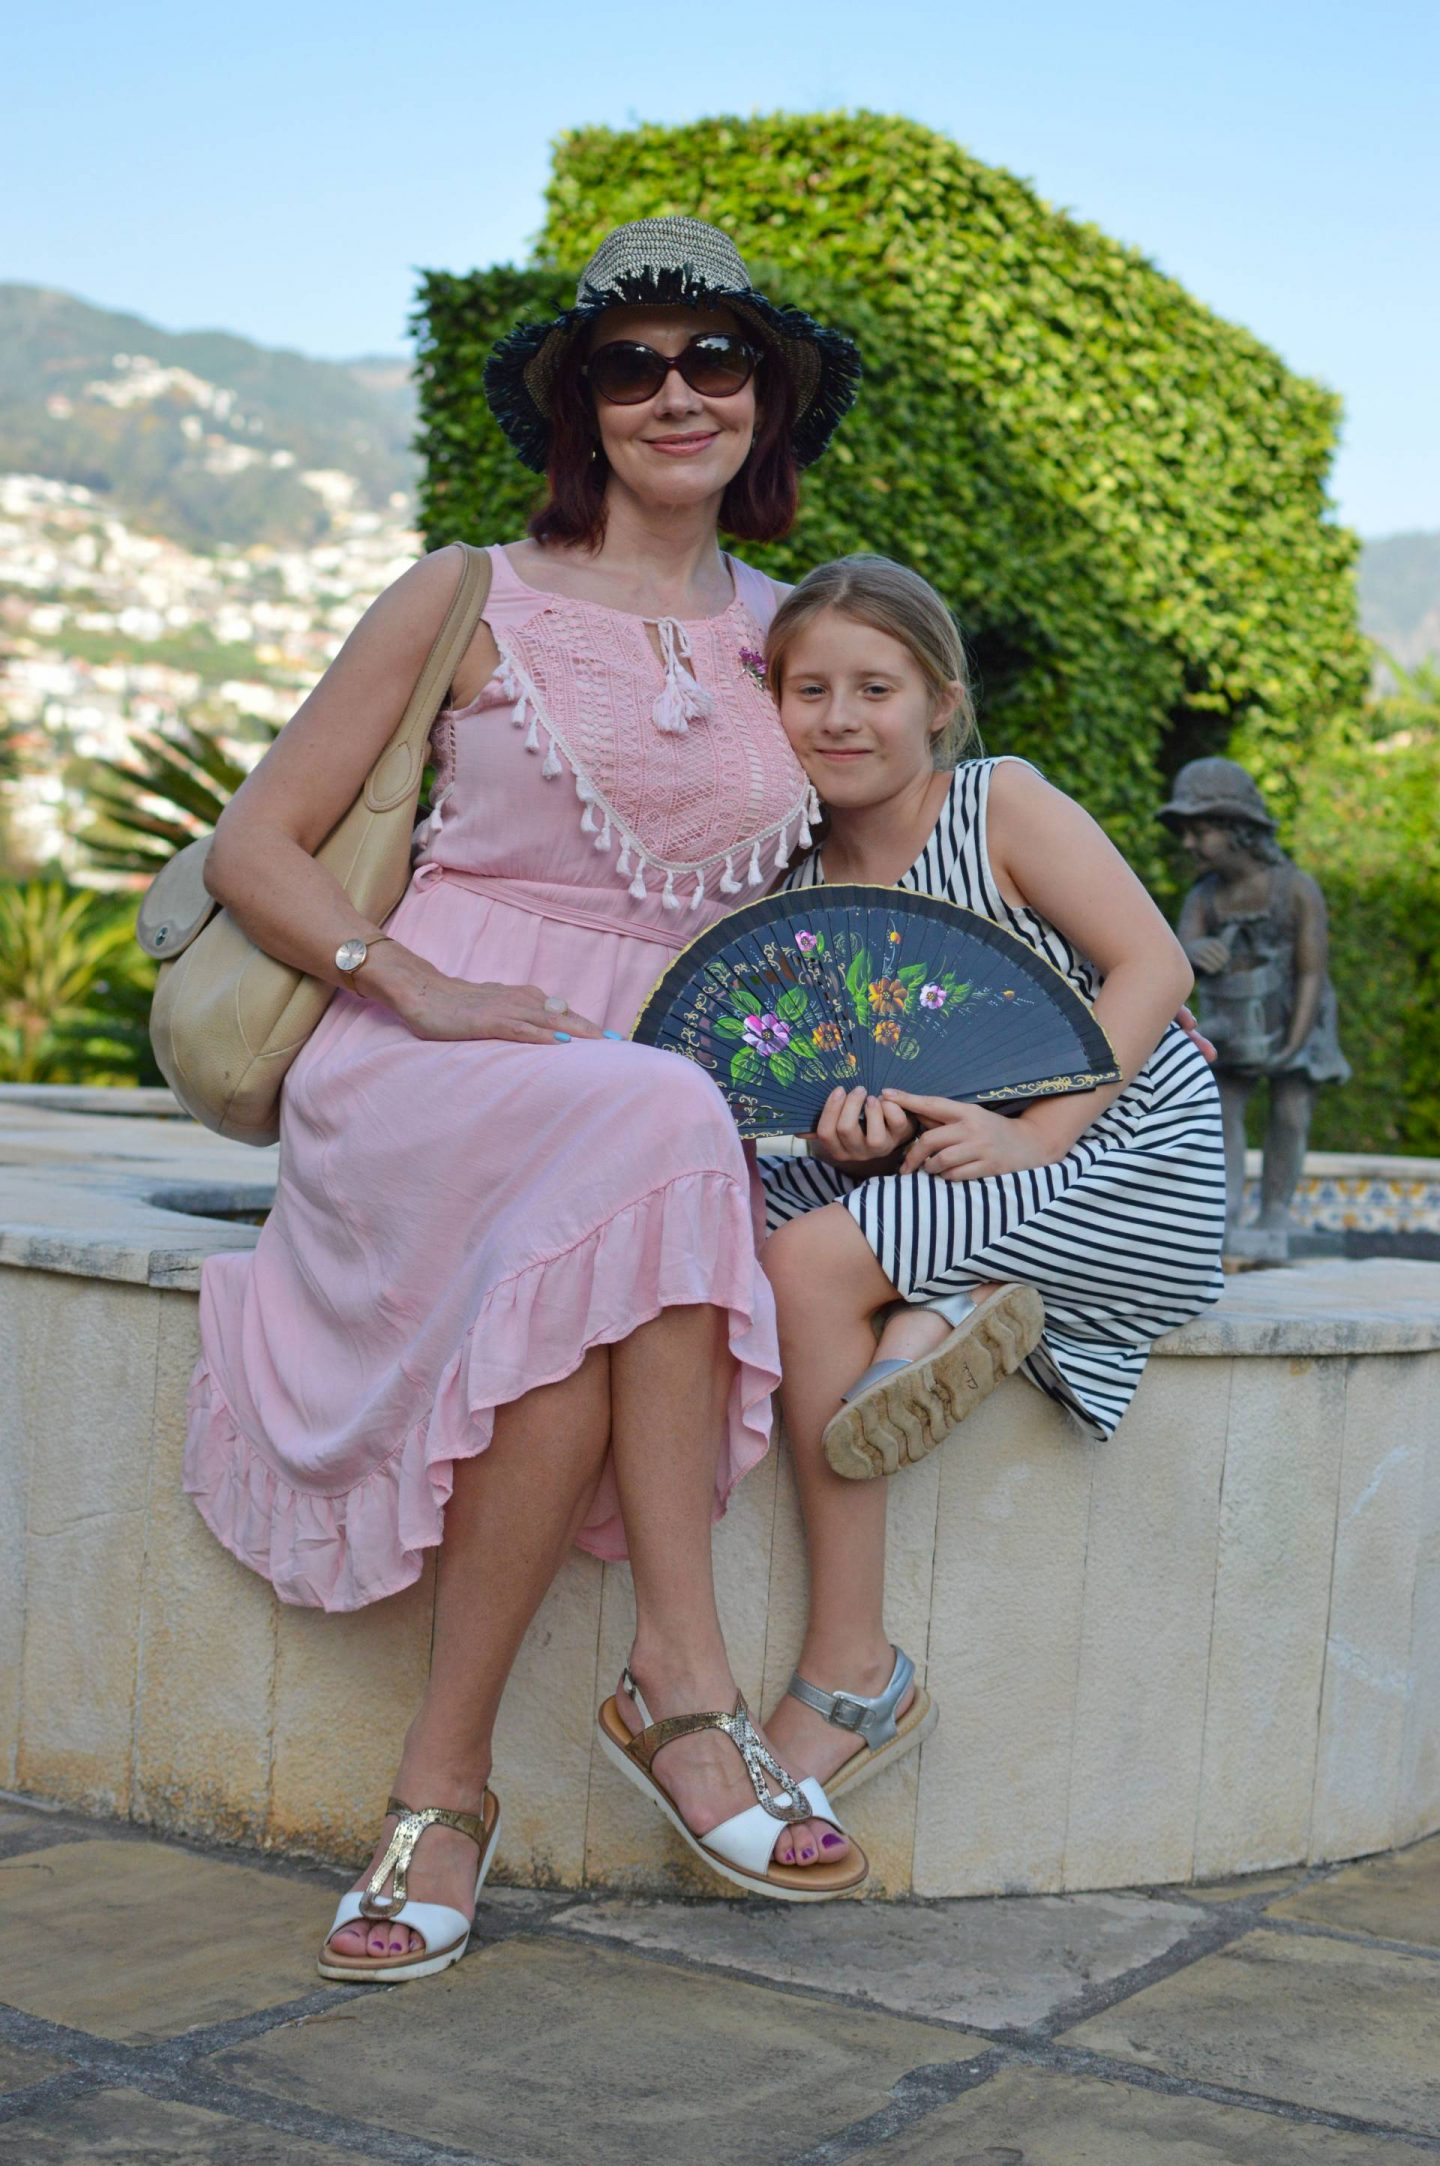 pink cotton Oeyes sundress, sightseeing in Madeira, Quinta Jardins do Lago hotel garden